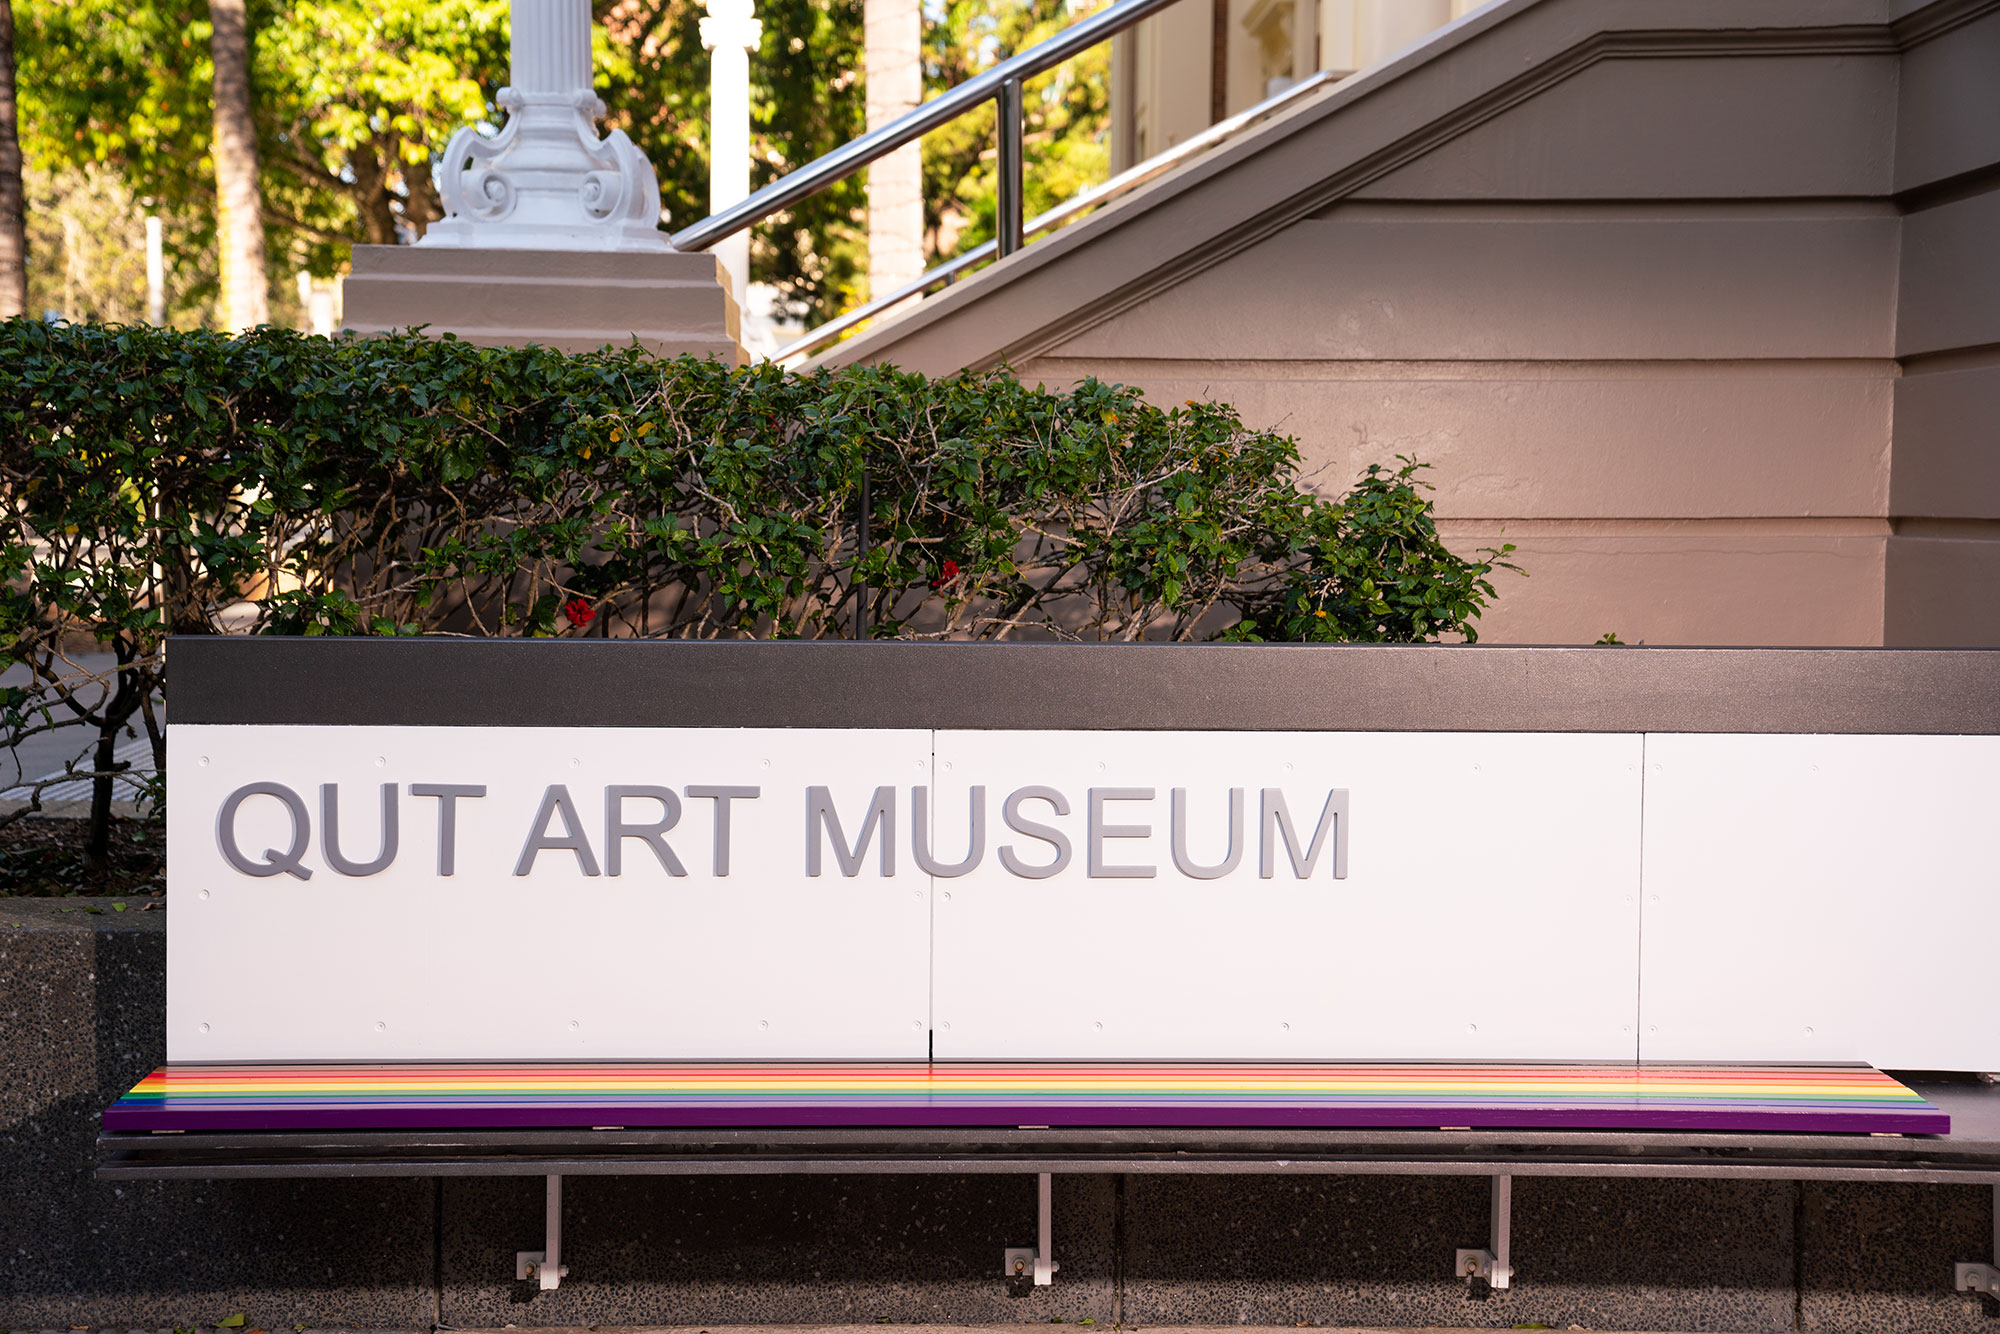 QUT Art Museum entrance